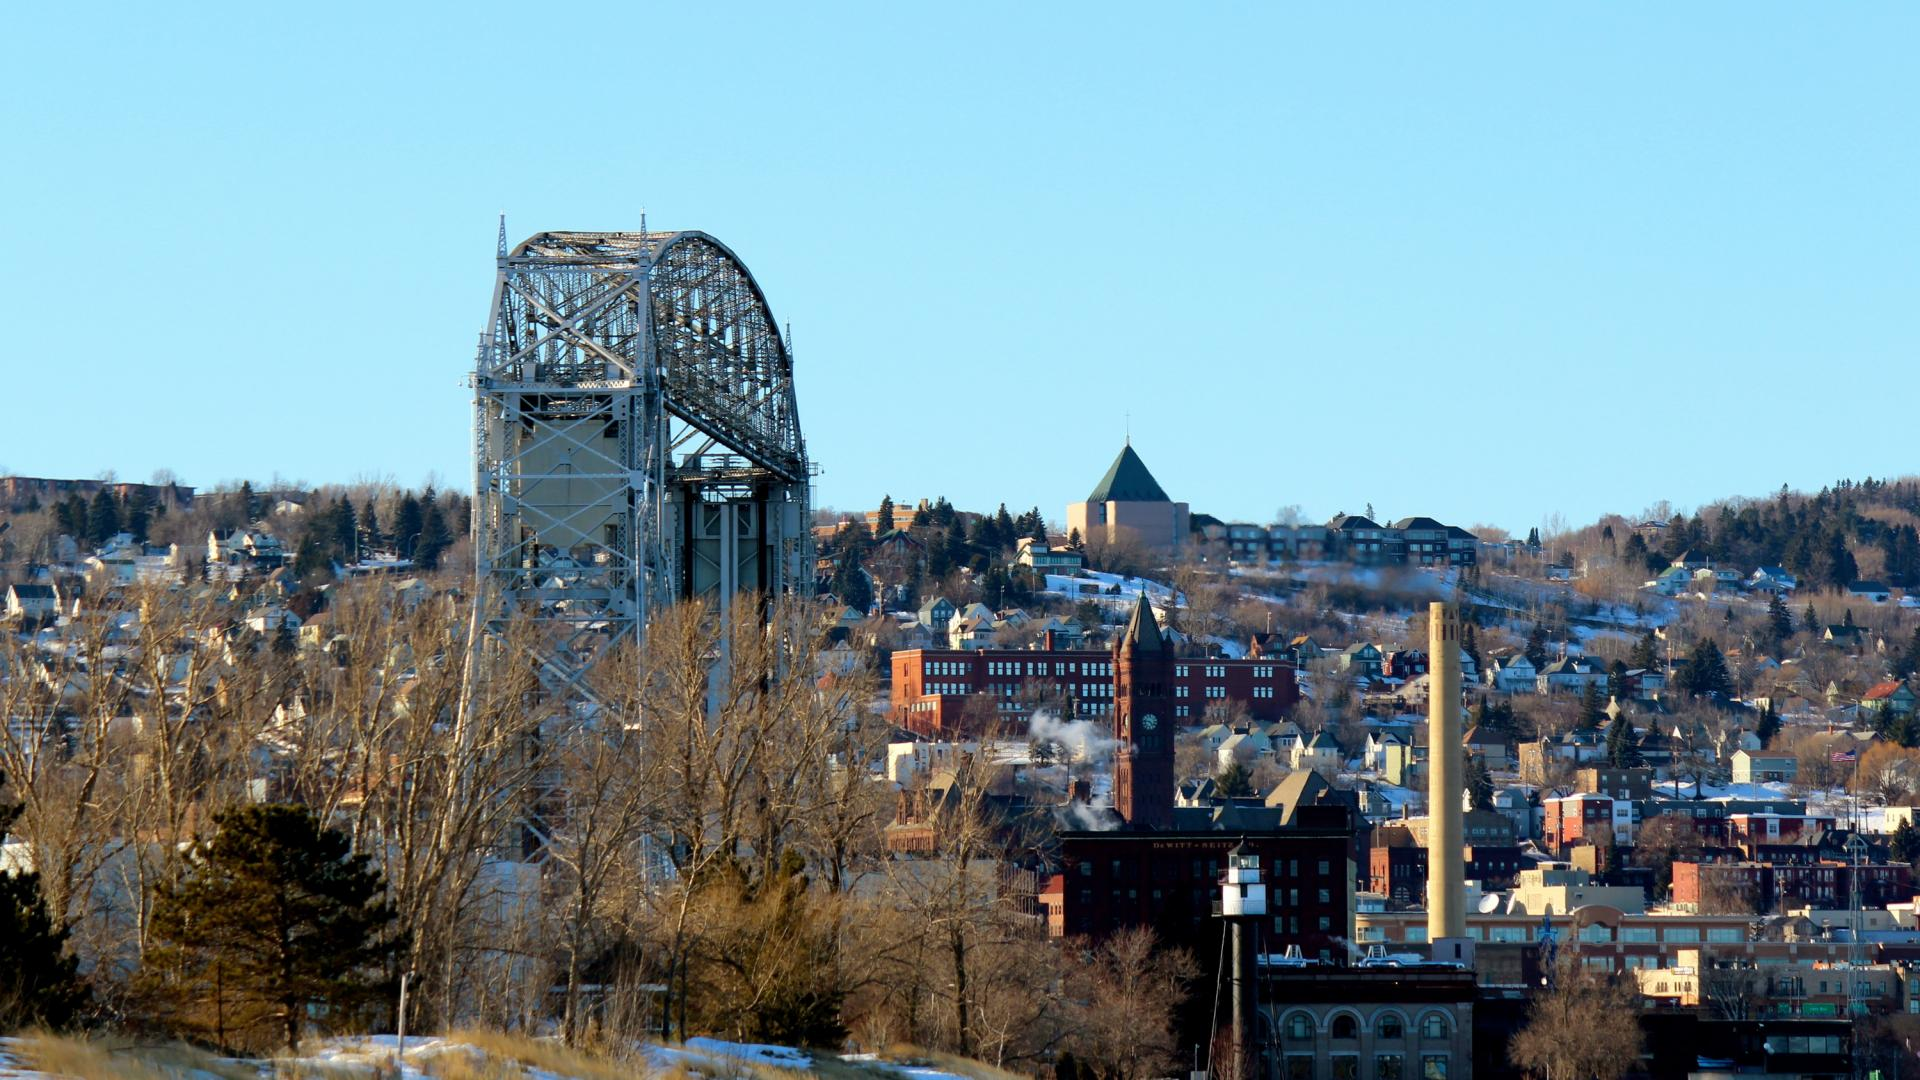 Aerial Lift Bridge and downtown Duluth in winter